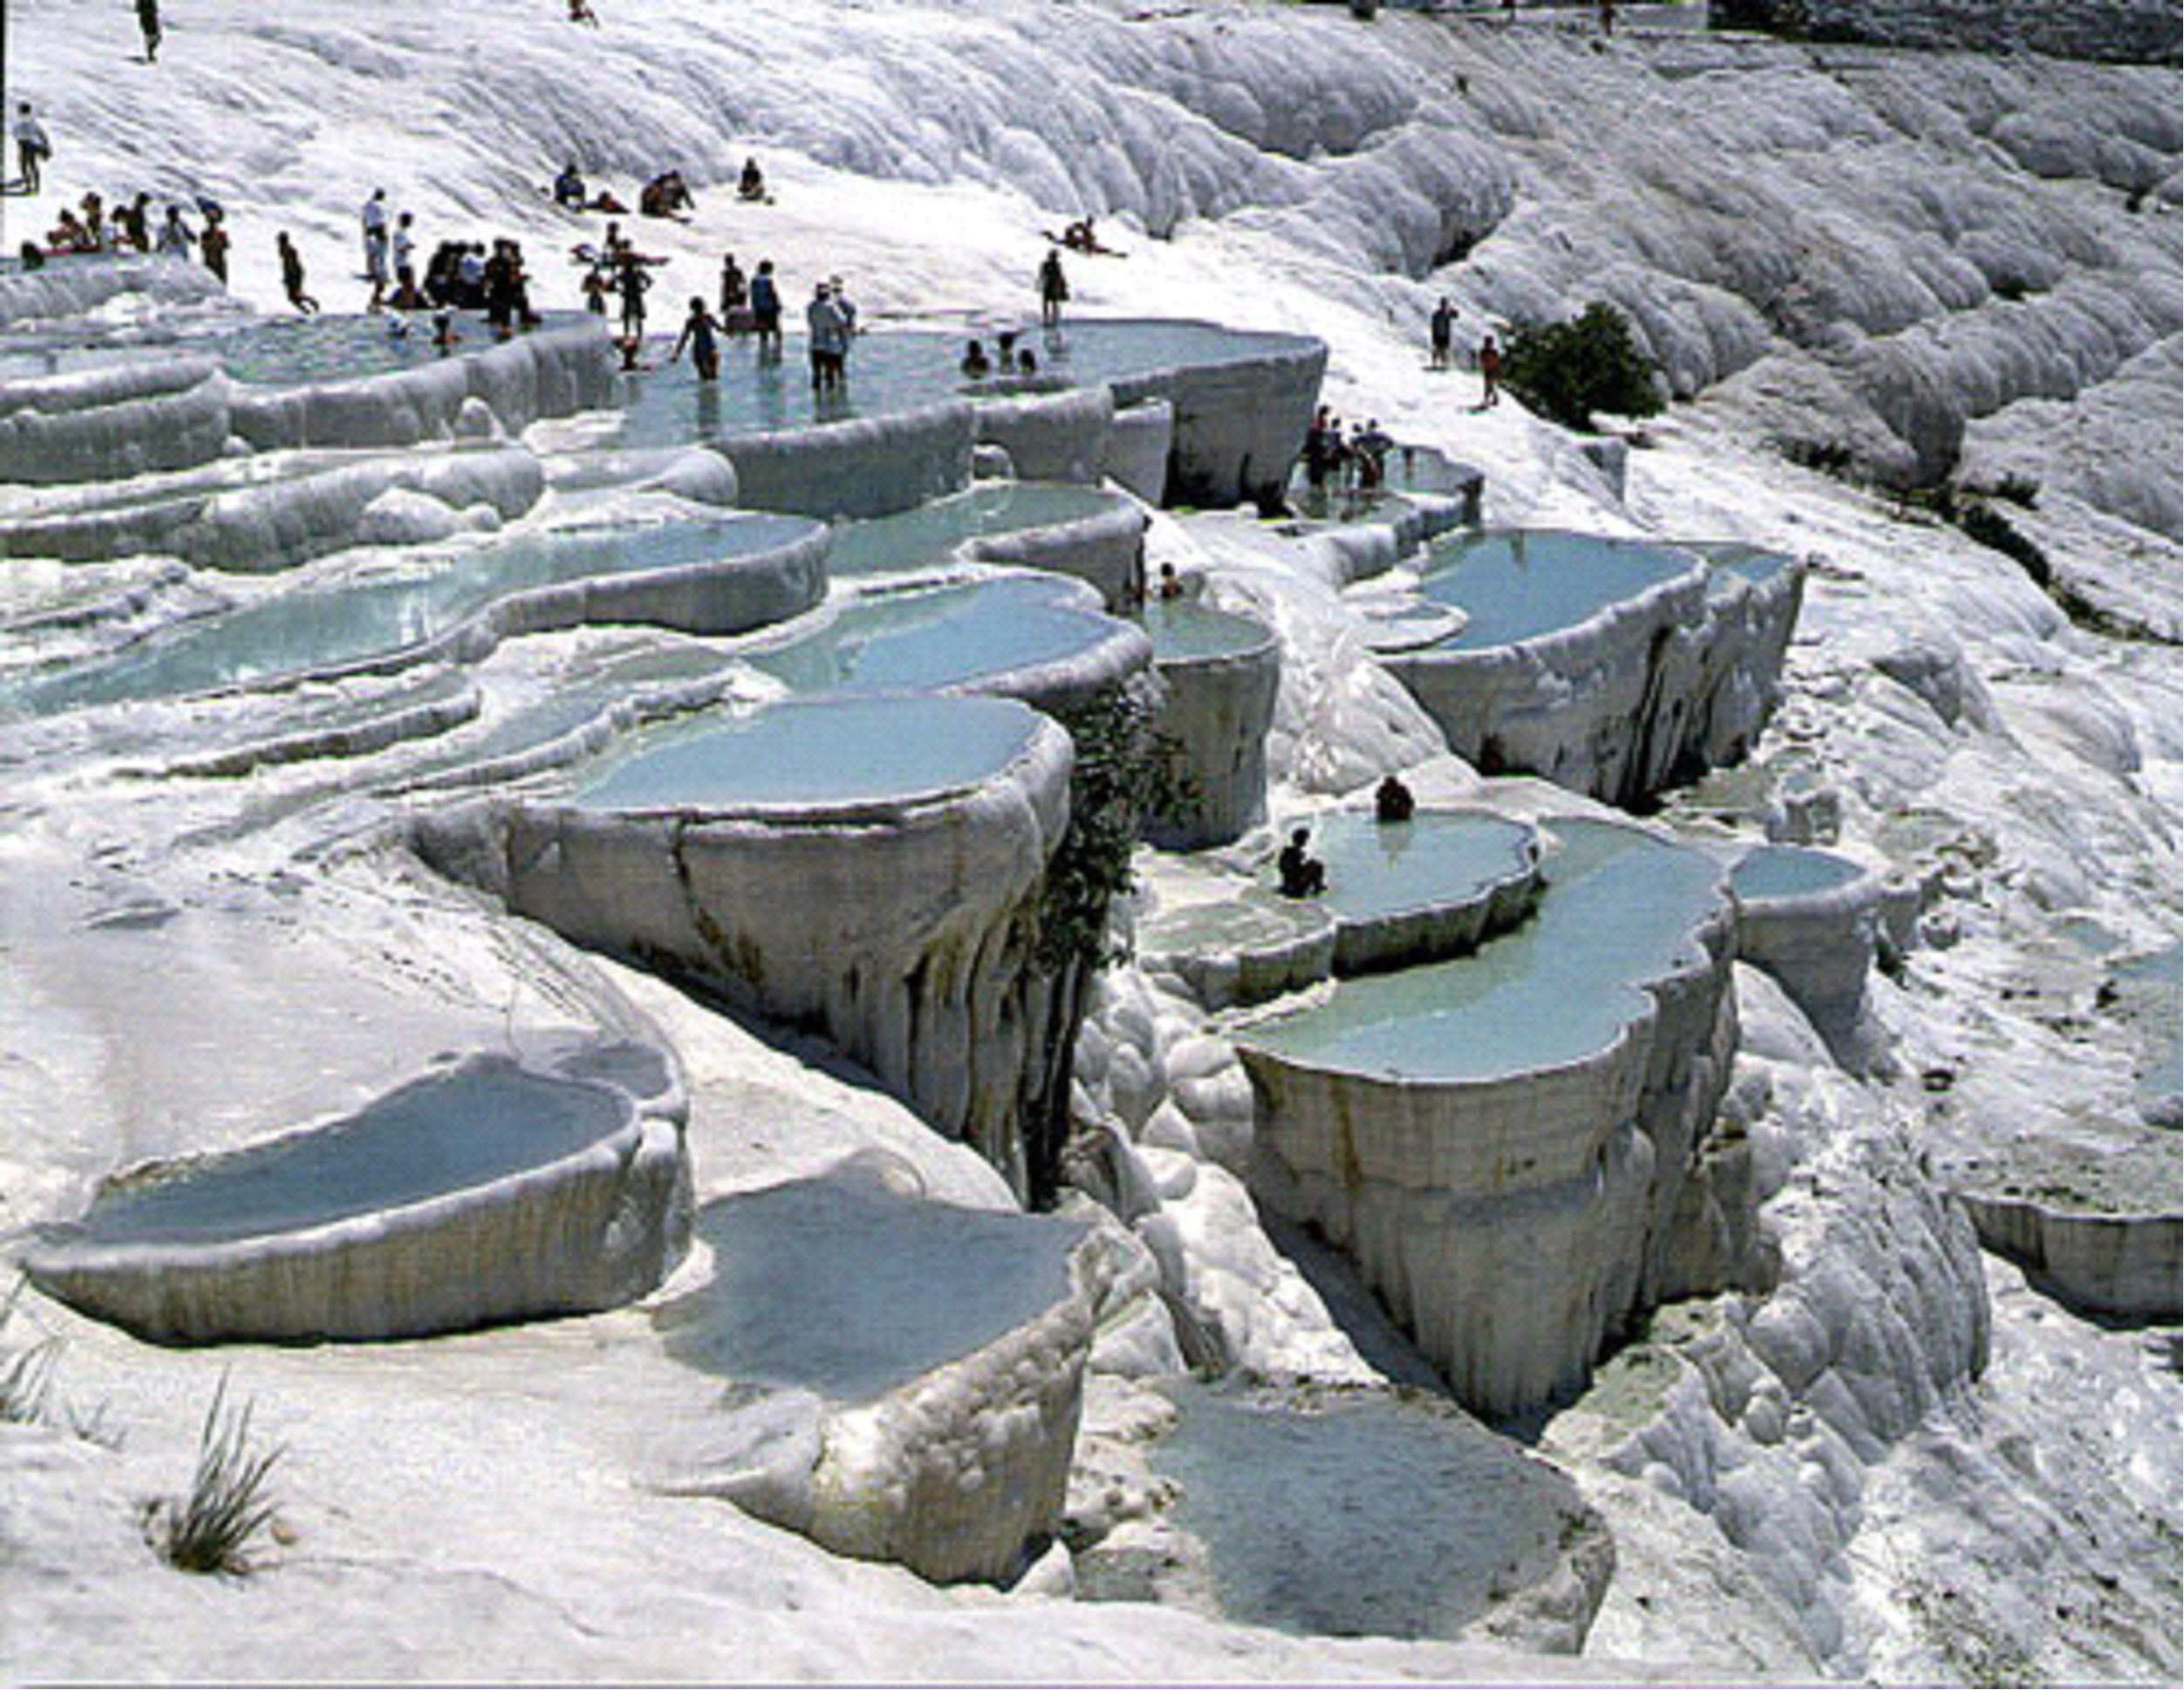 Pamukkale the wander life for Warm places to visit in december in usa